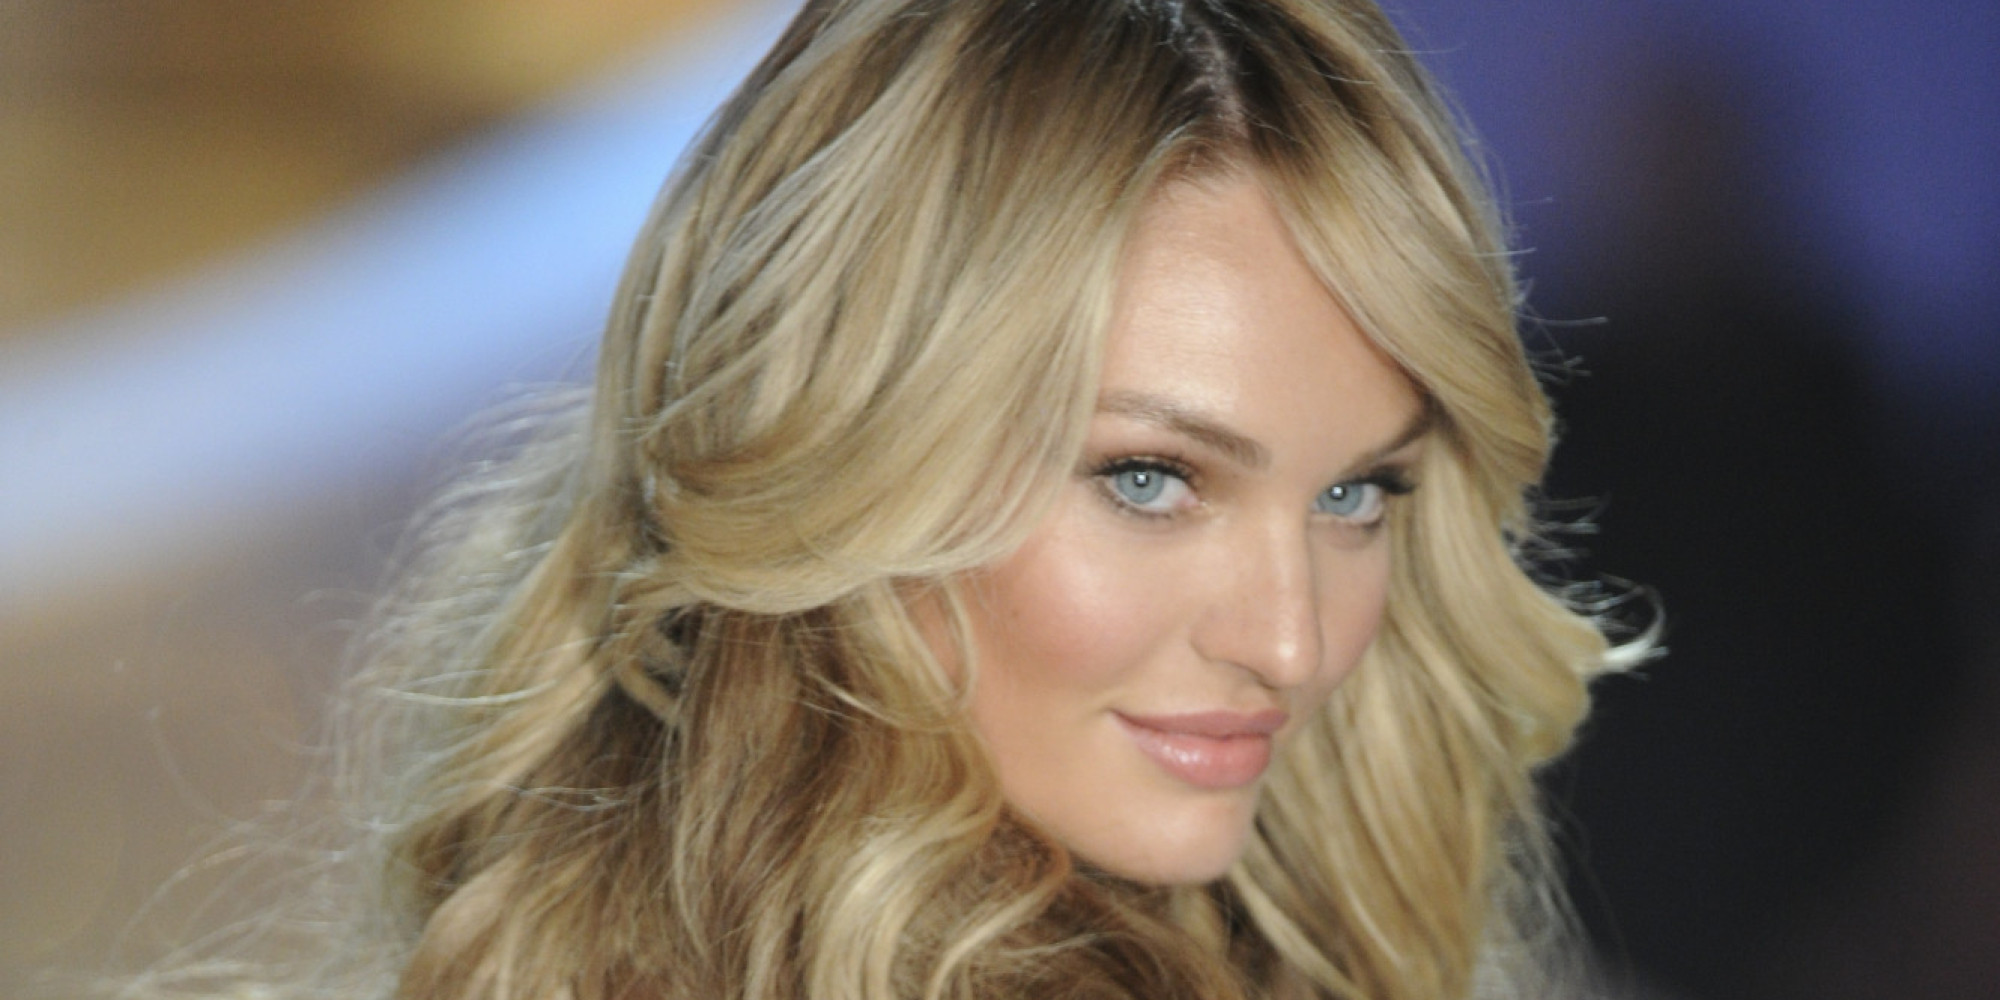 Candice swanepoel naked sexy pic 79